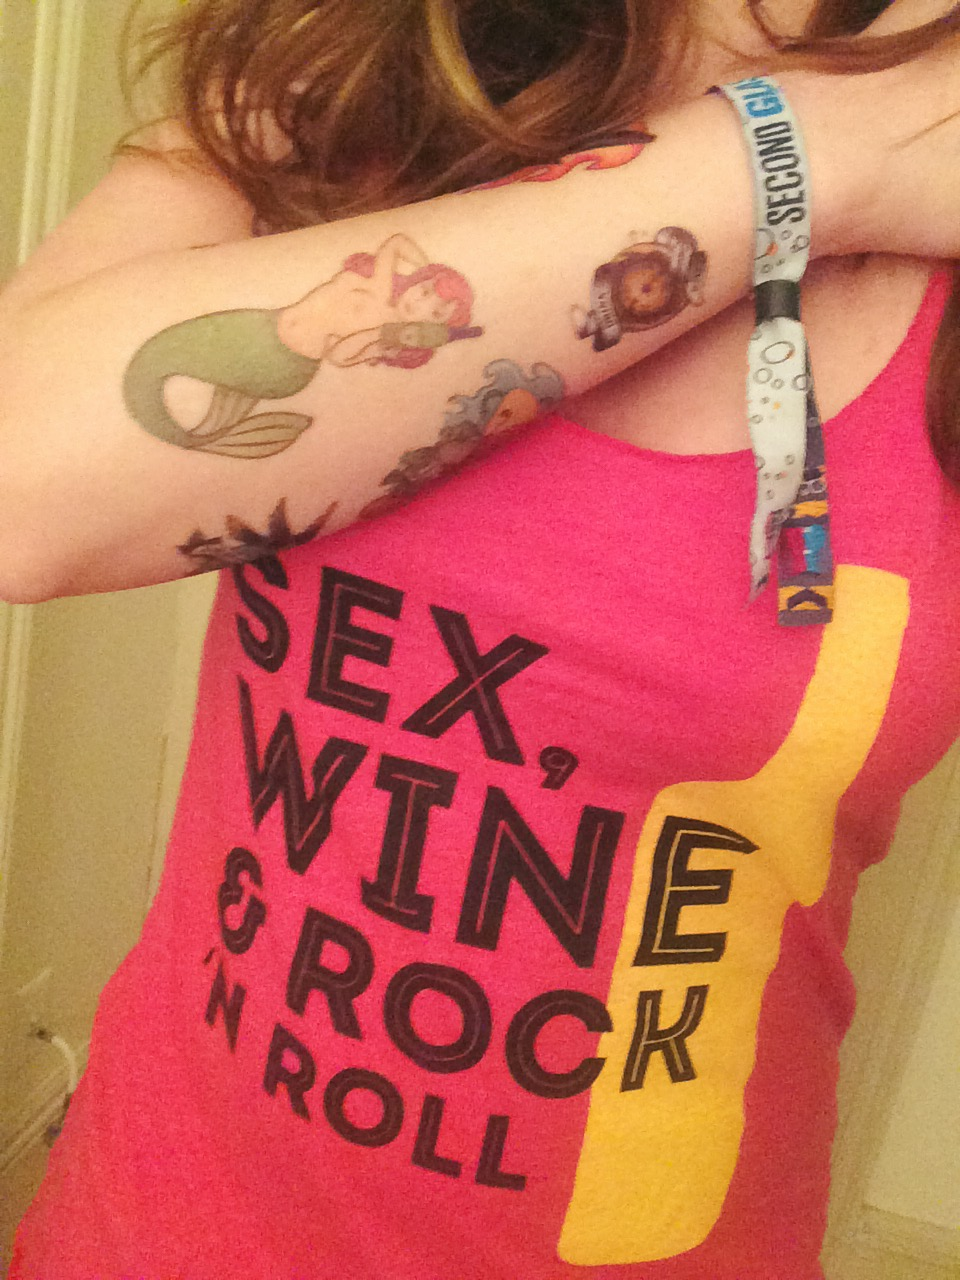 sex wine rock n roll